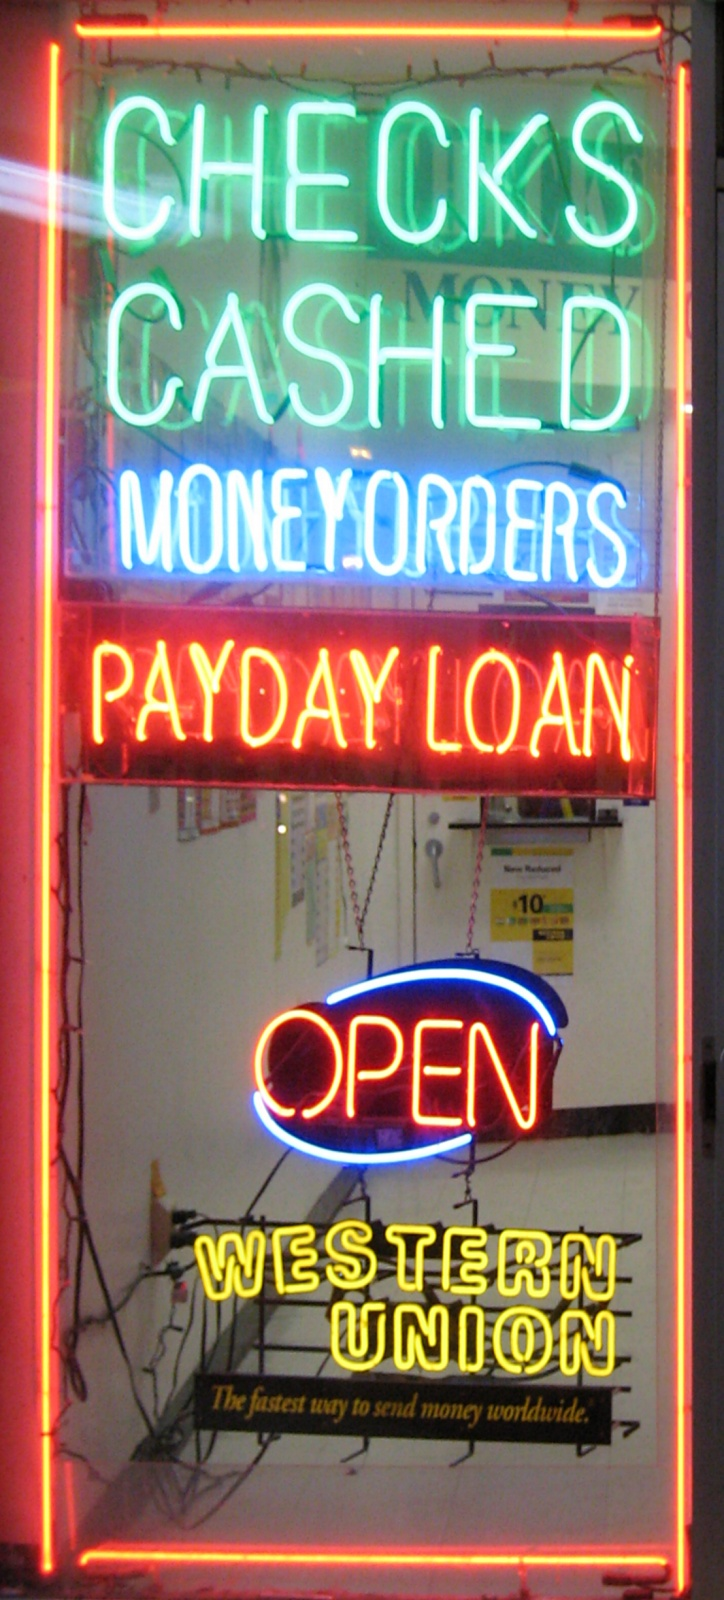 A neon sign advertising pay day loans